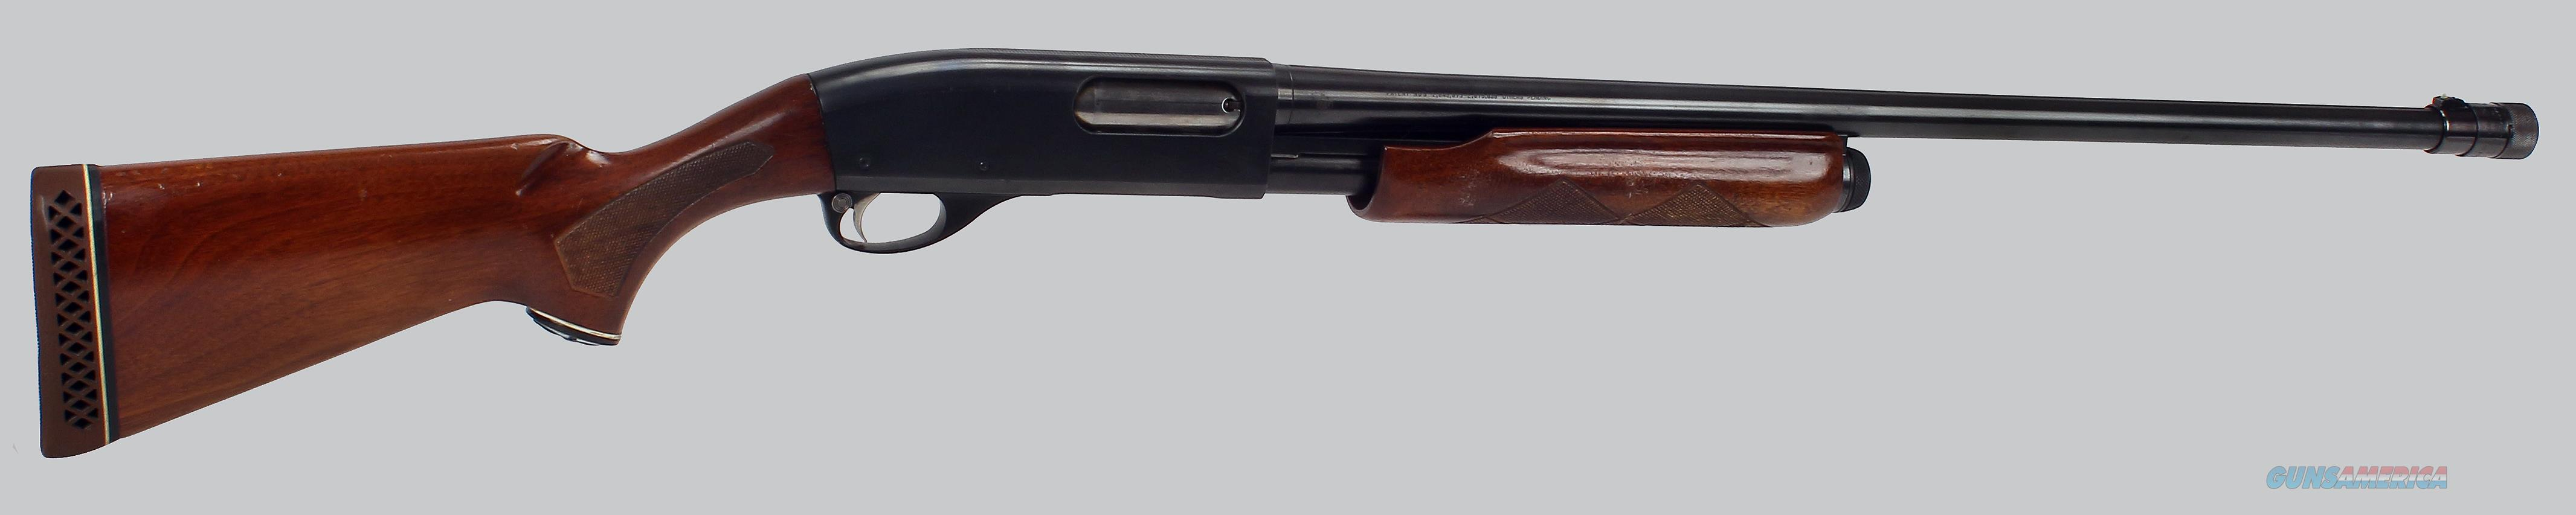 Remington 870 Wingmaster 12ga Pump Shotgun  Guns > Shotguns > Remington Shotguns  > Pump > Hunting